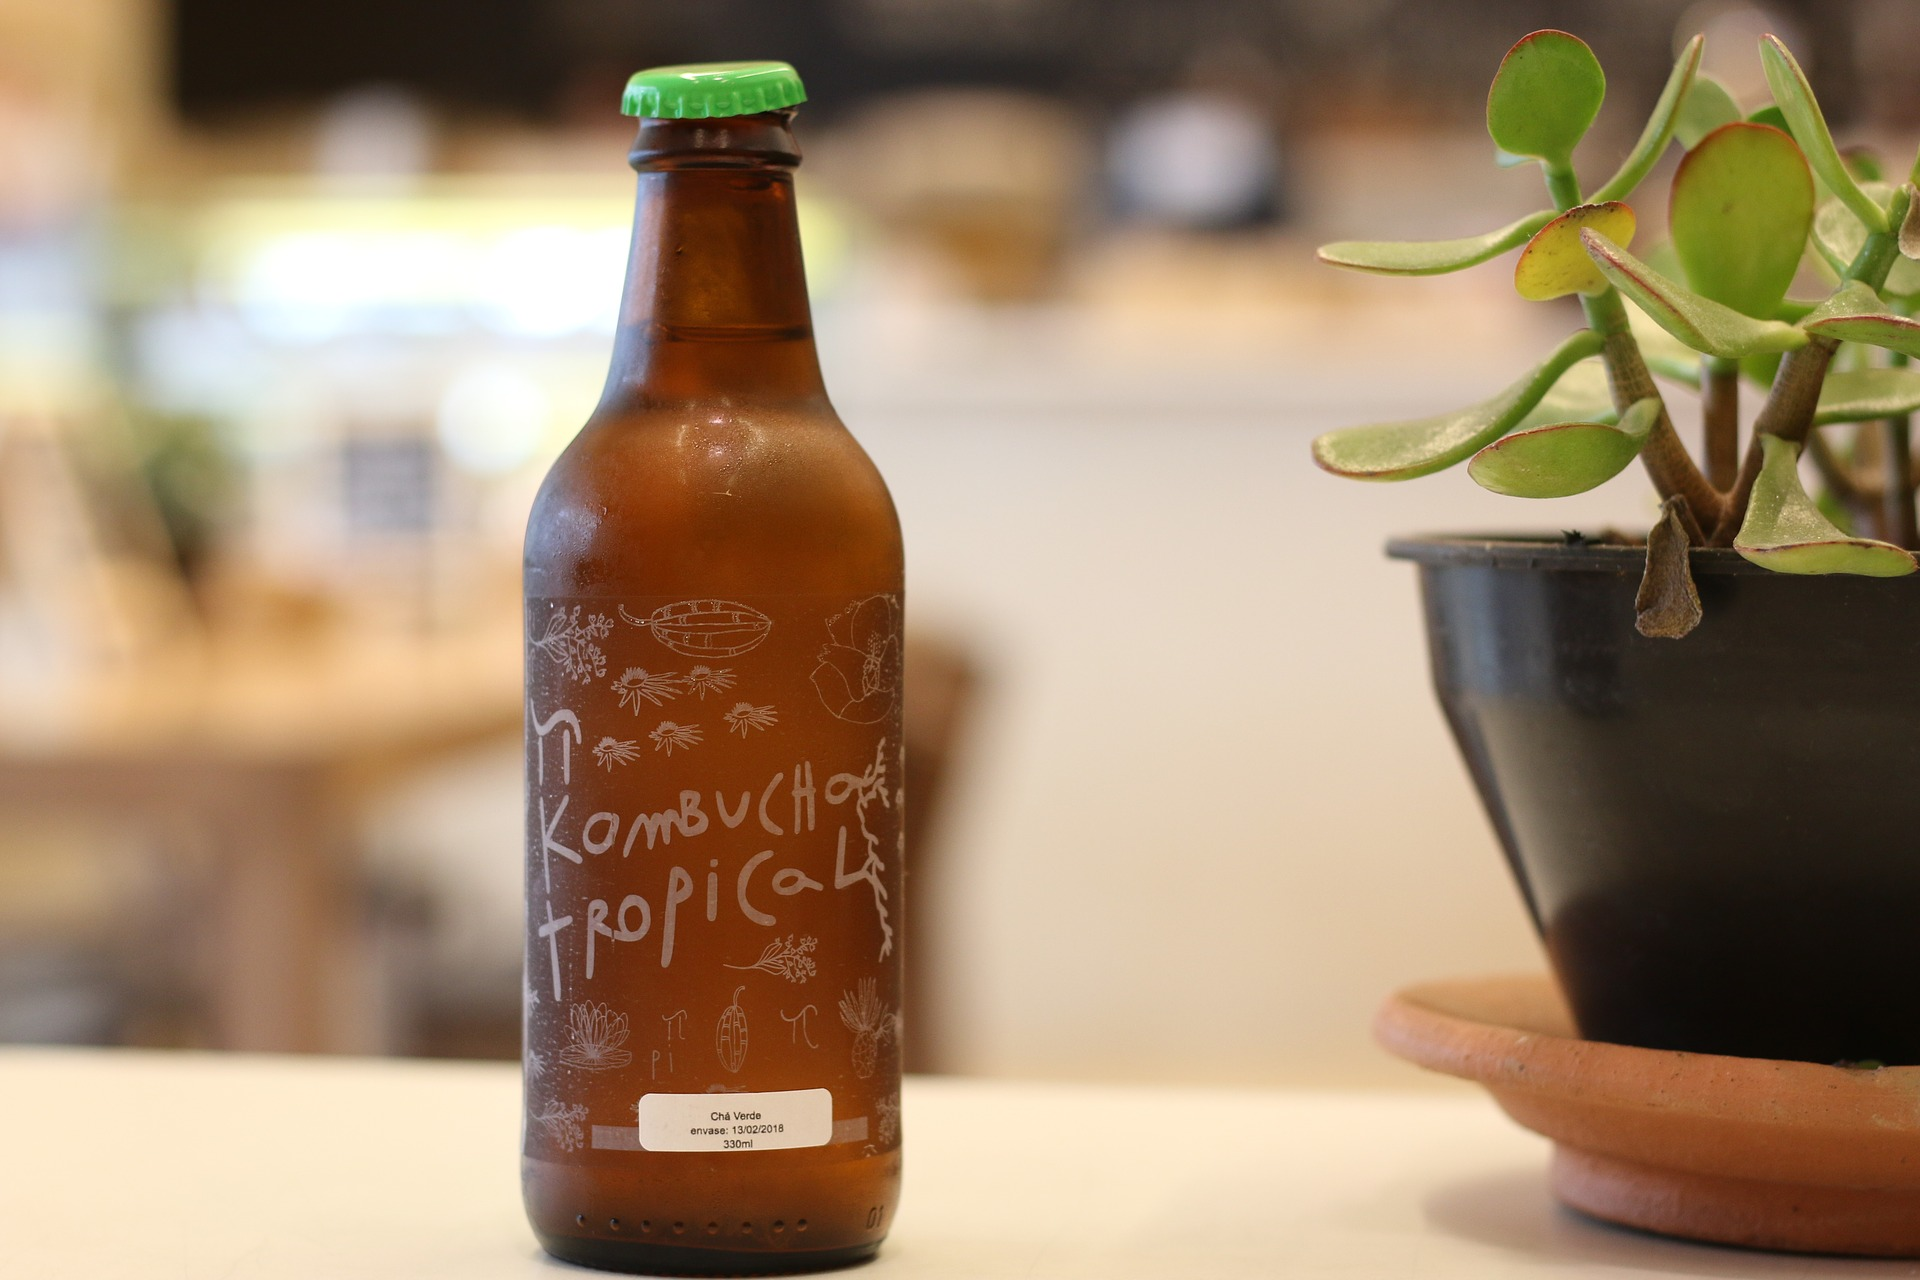 What Exactly Does Kombucha Do For You?